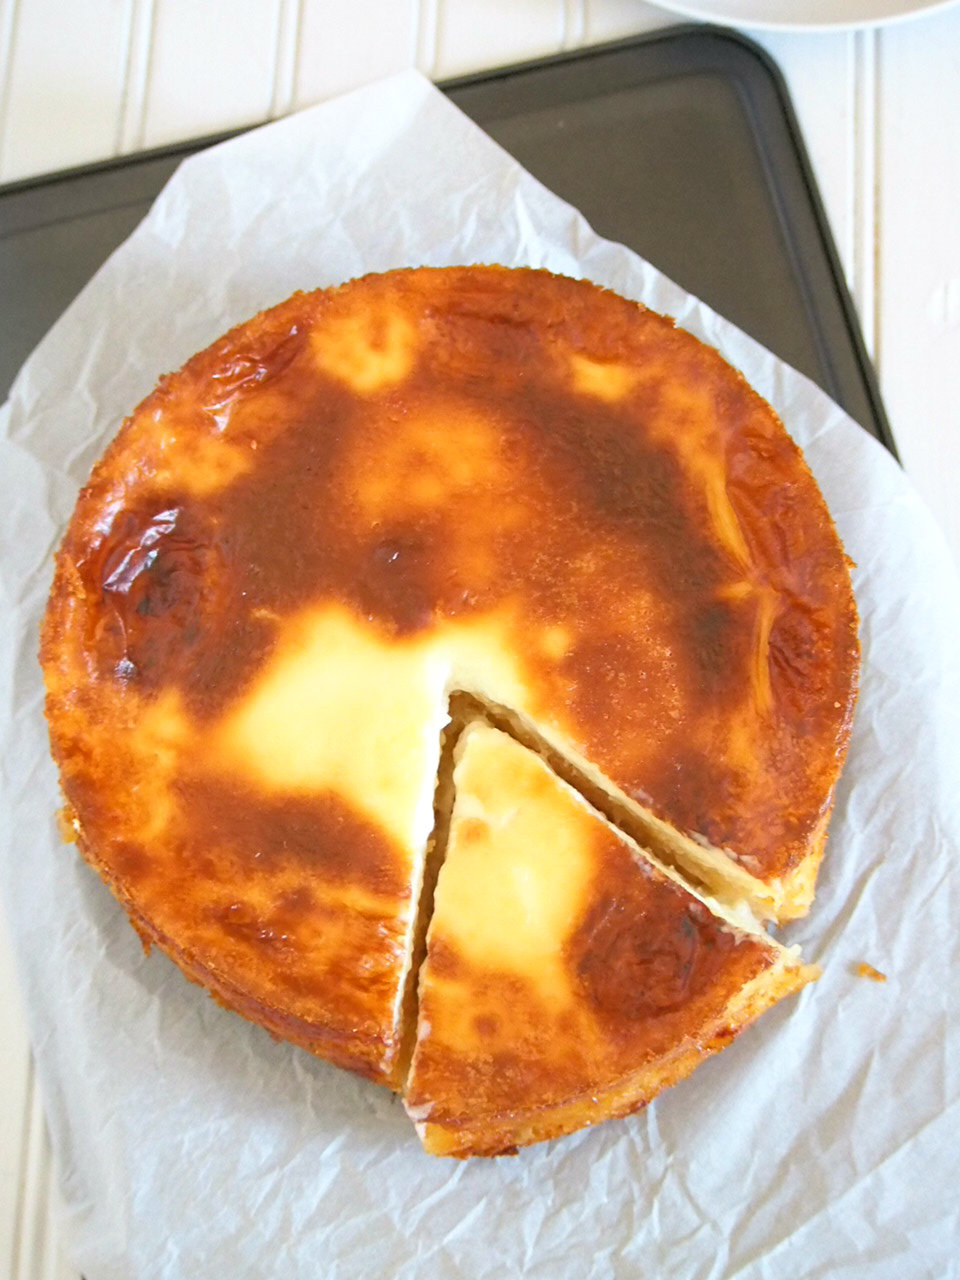 Top shot angle of cassava cake.